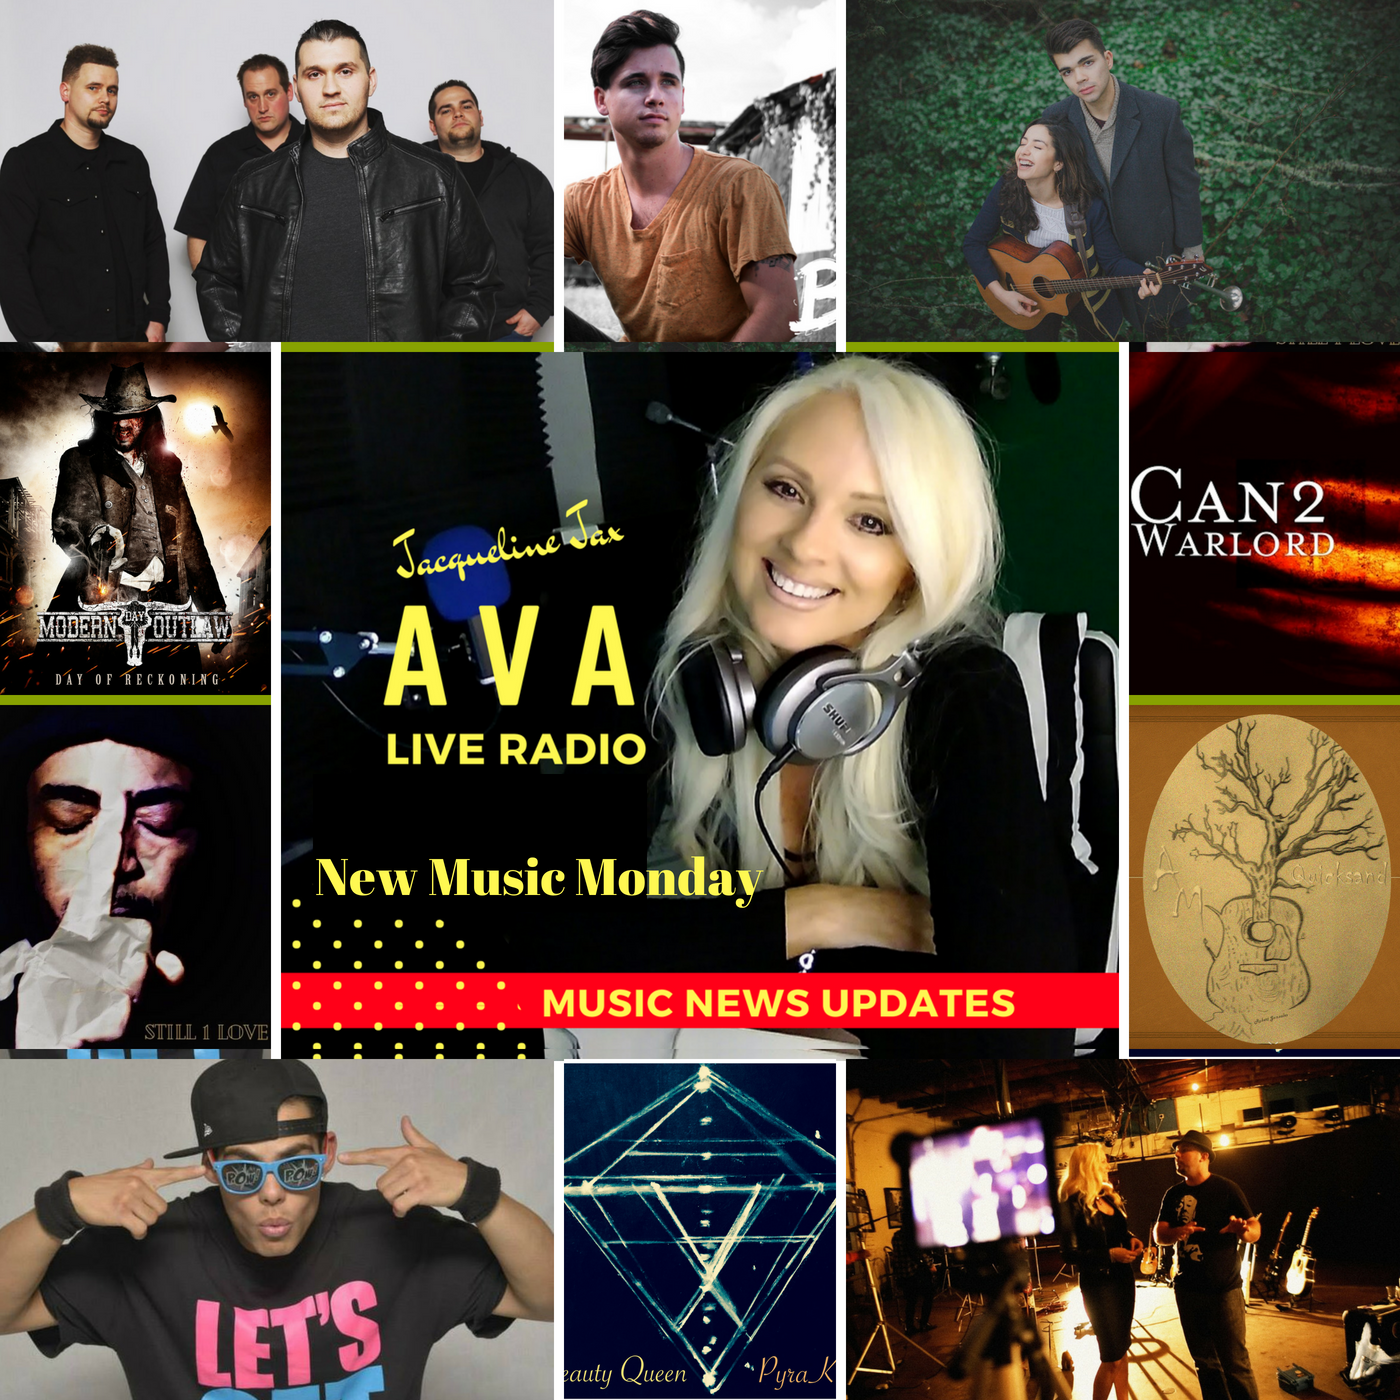 5.14 New Music Monday and Music Business News